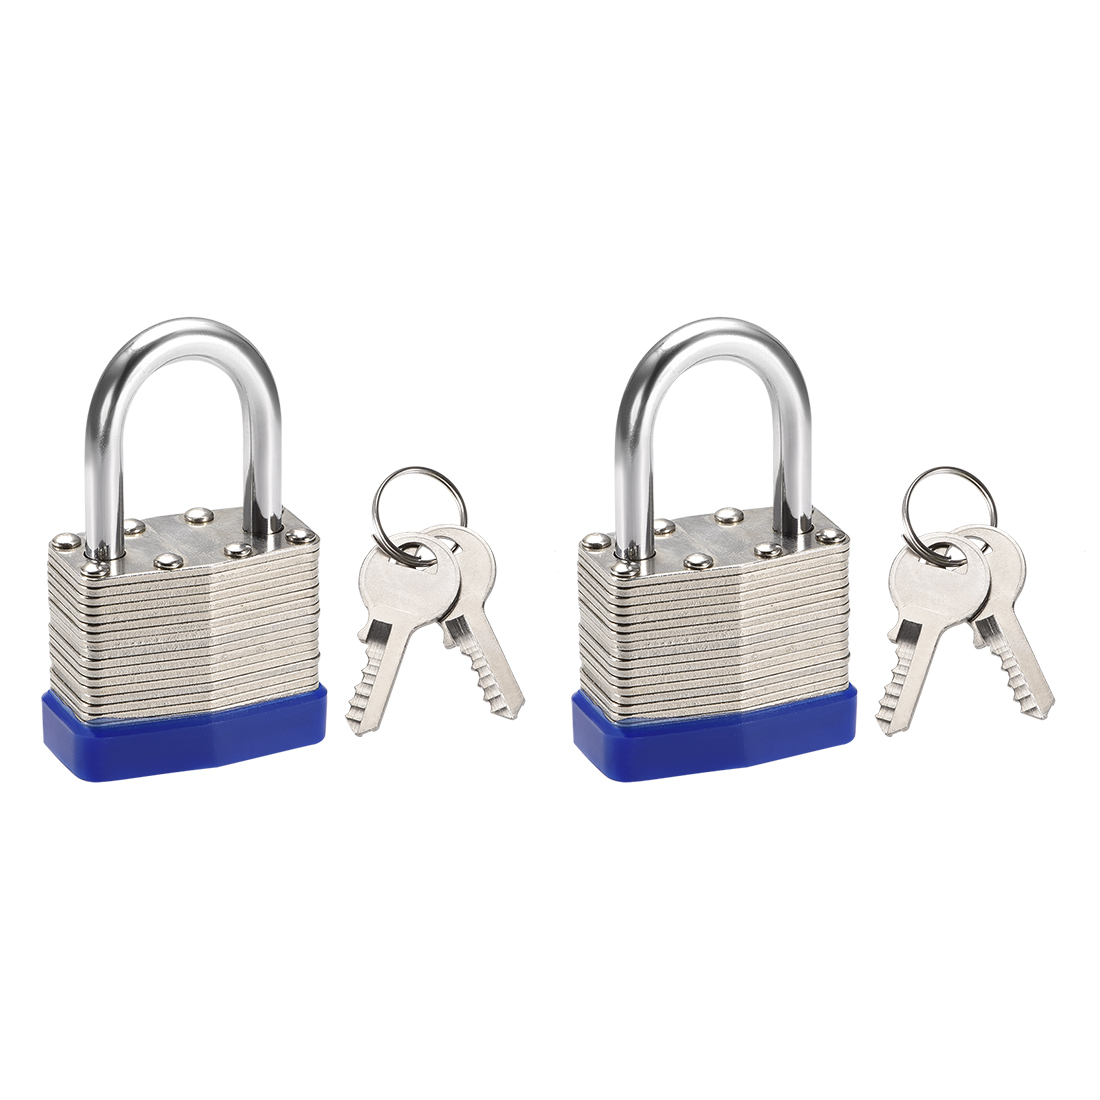 2pcs 1 Inch Shackle Key Different Safety Padlock Steel Lock